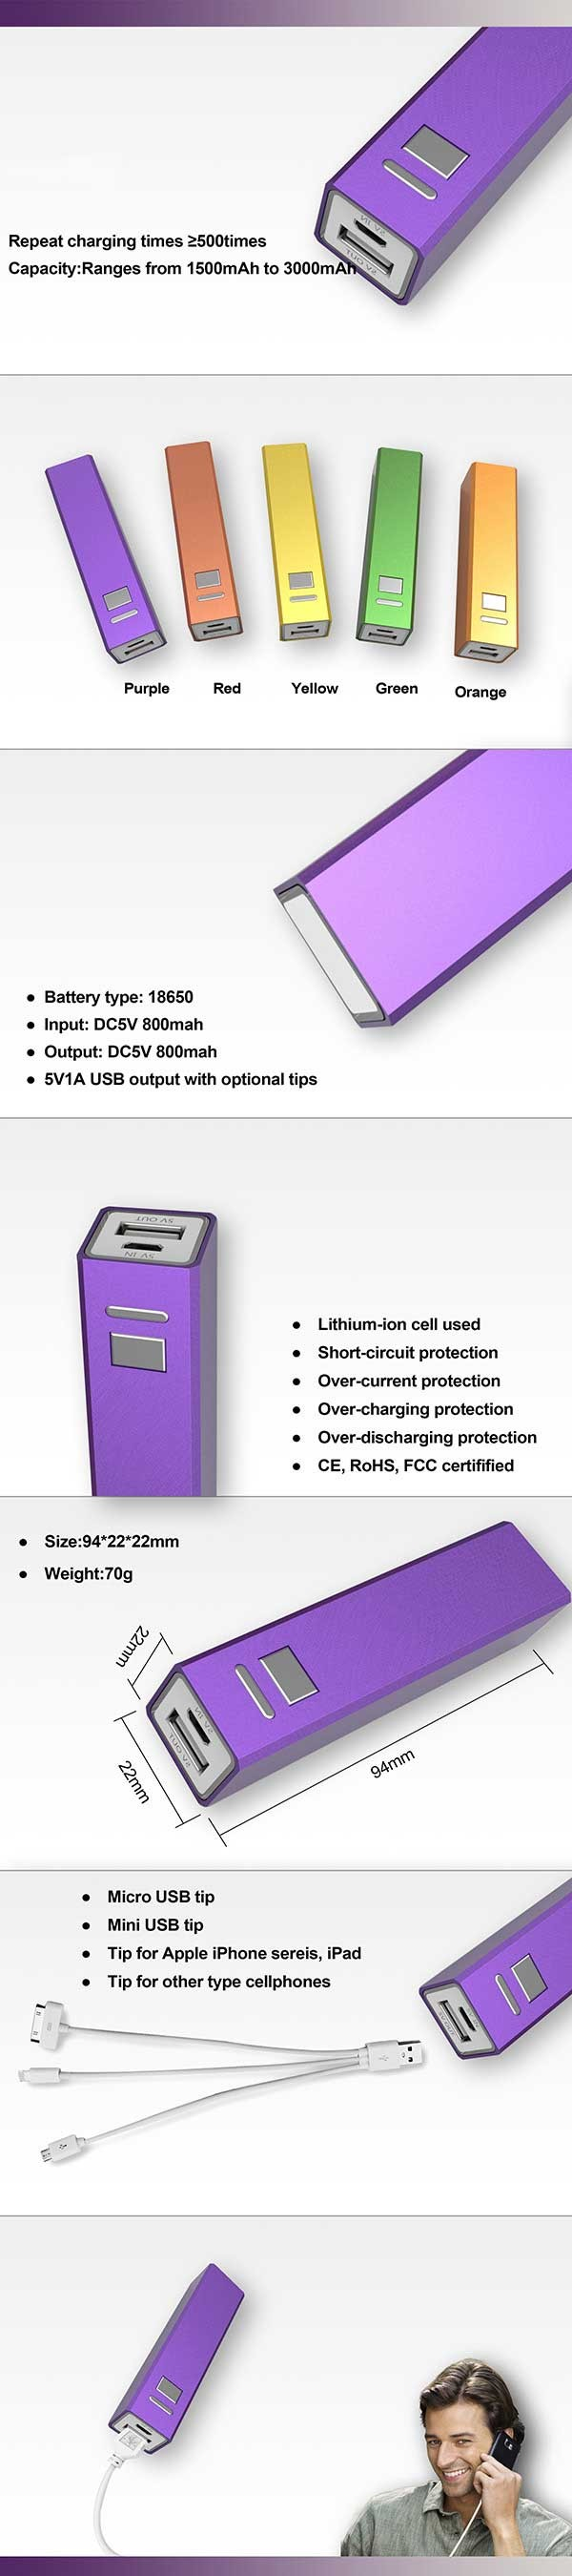 Best promotional retangle power bank button brushed metal powerbank portable power bank